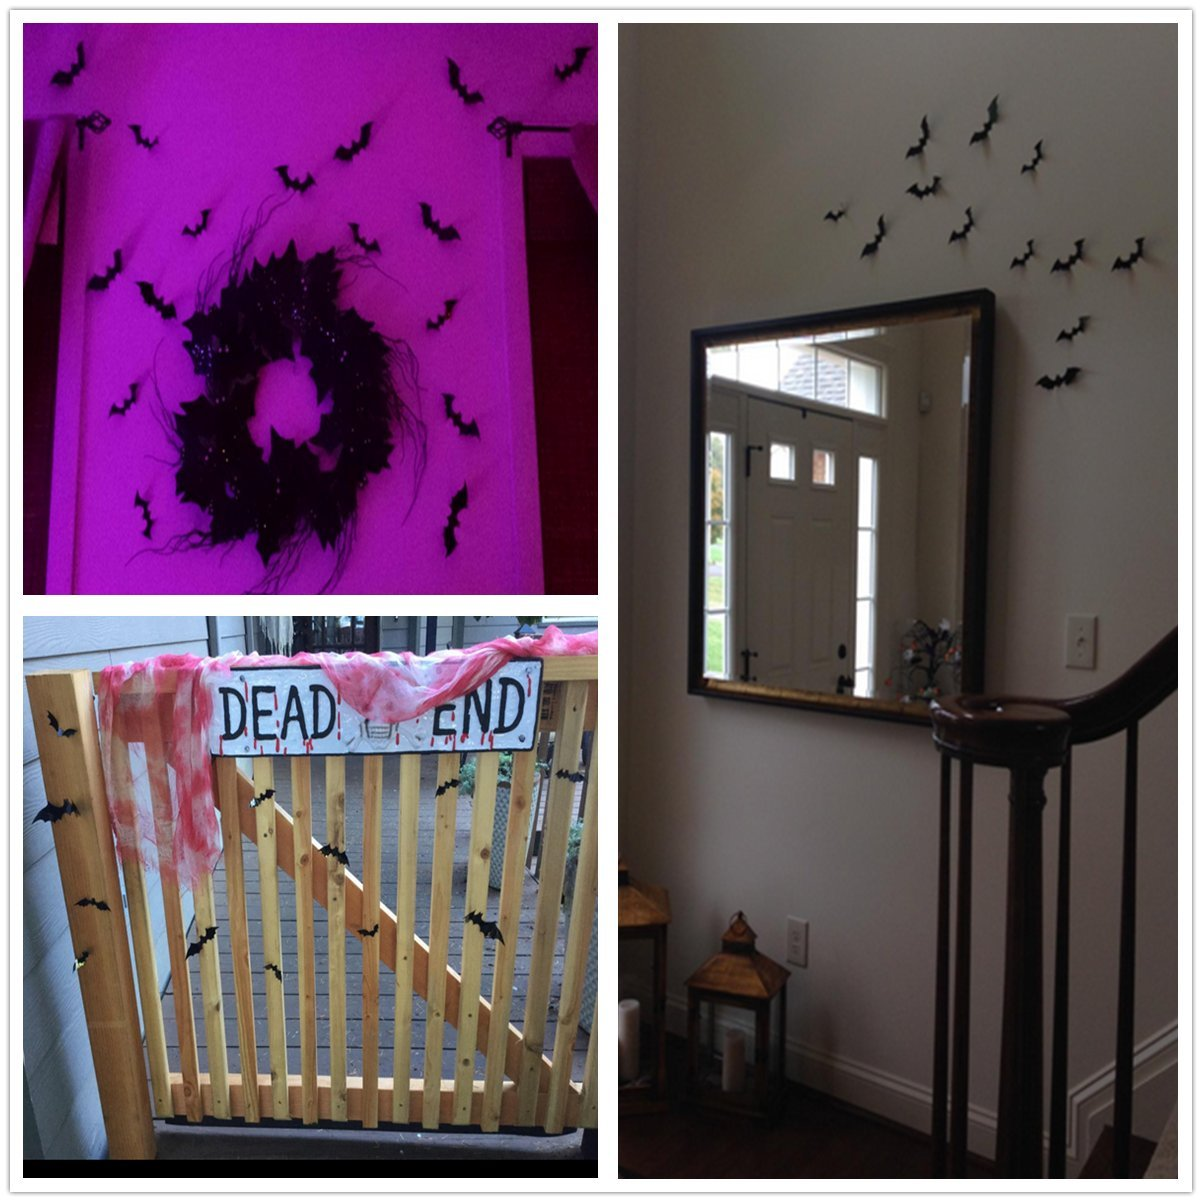 60 Pack Halloween Decorations Scary Bats 3D Black Bats Wall Decals Home Decor or Halloween Party Supplies Assorted Size